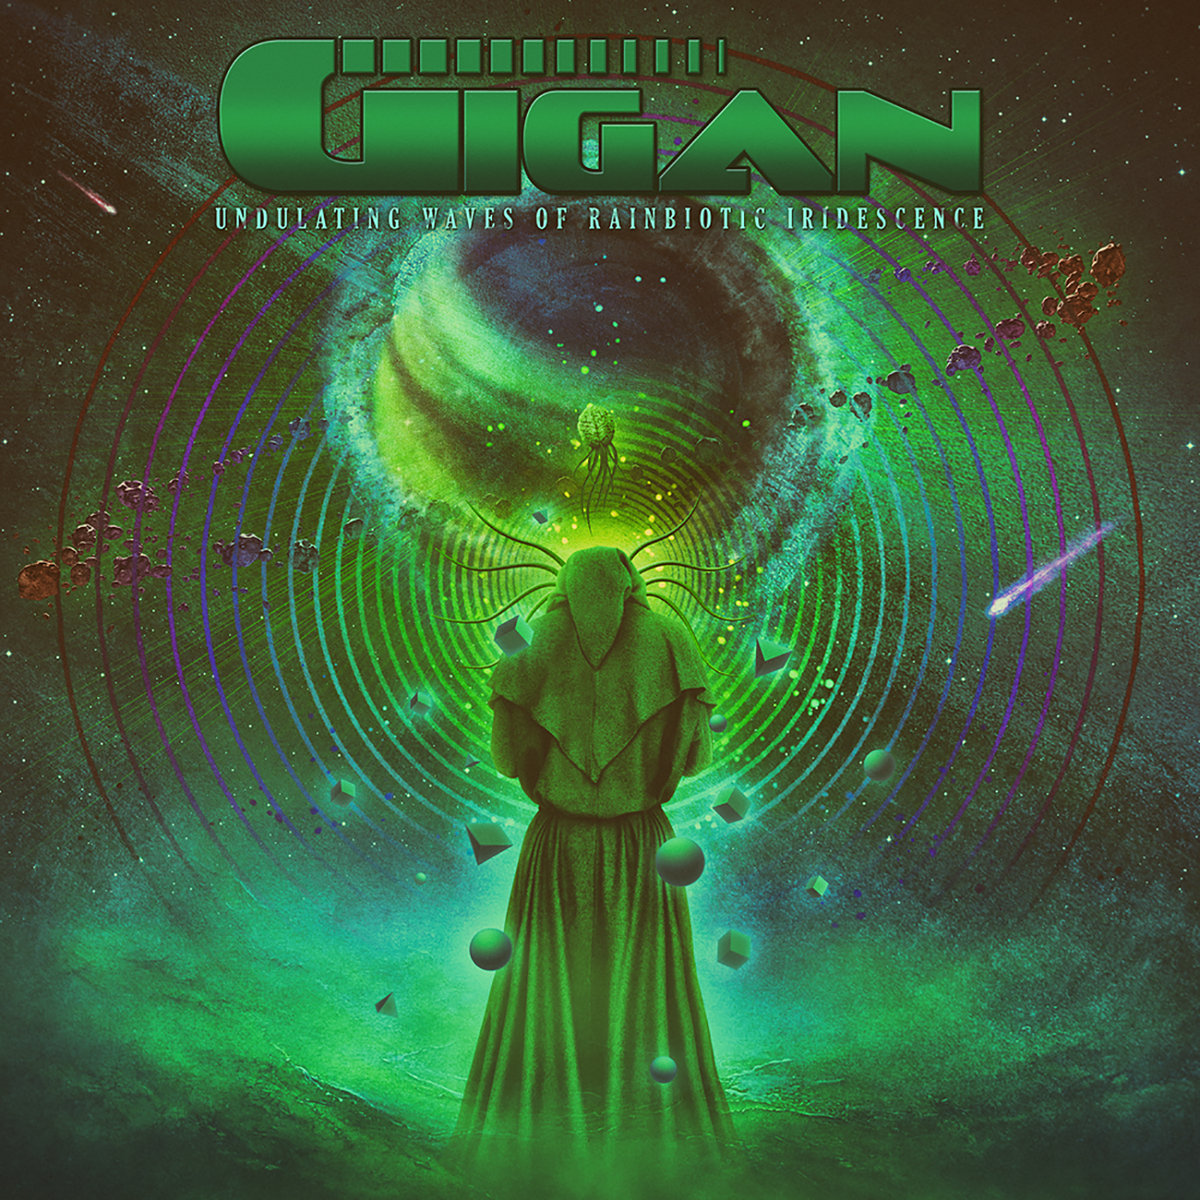 Gigan - Undulating Waves Of Rainbiotic Iridescence - 2017